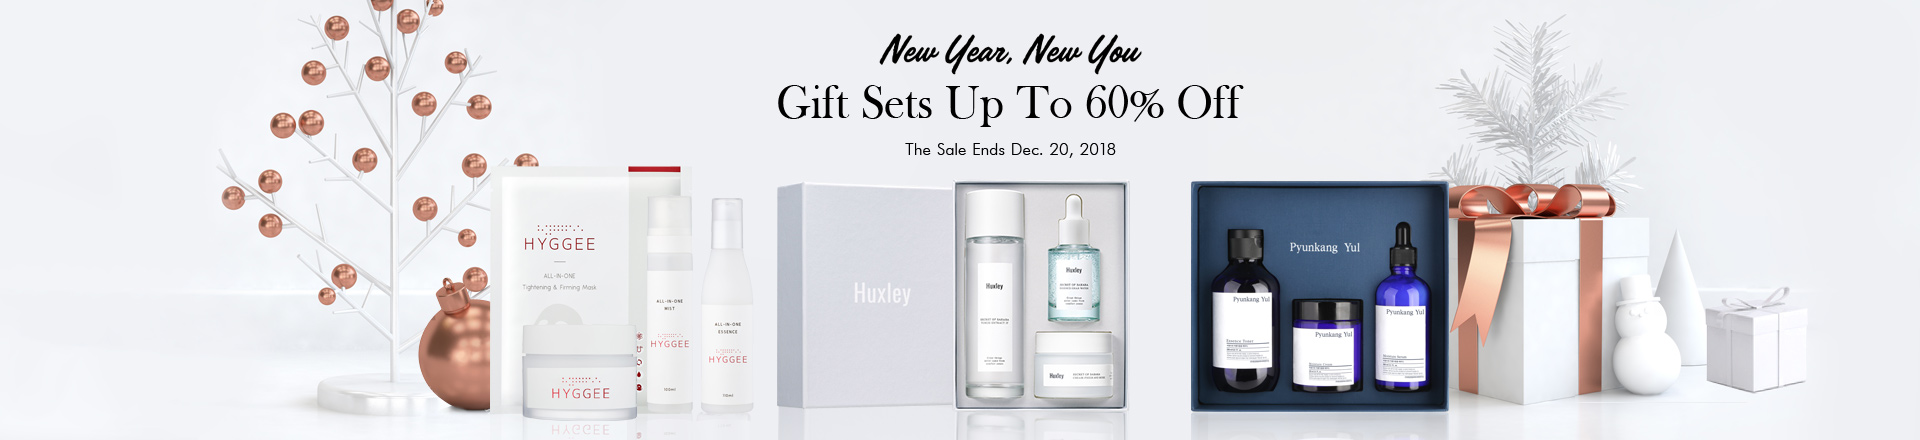 New Year, New You: Holiday Gift Sets Up To 60% OFF